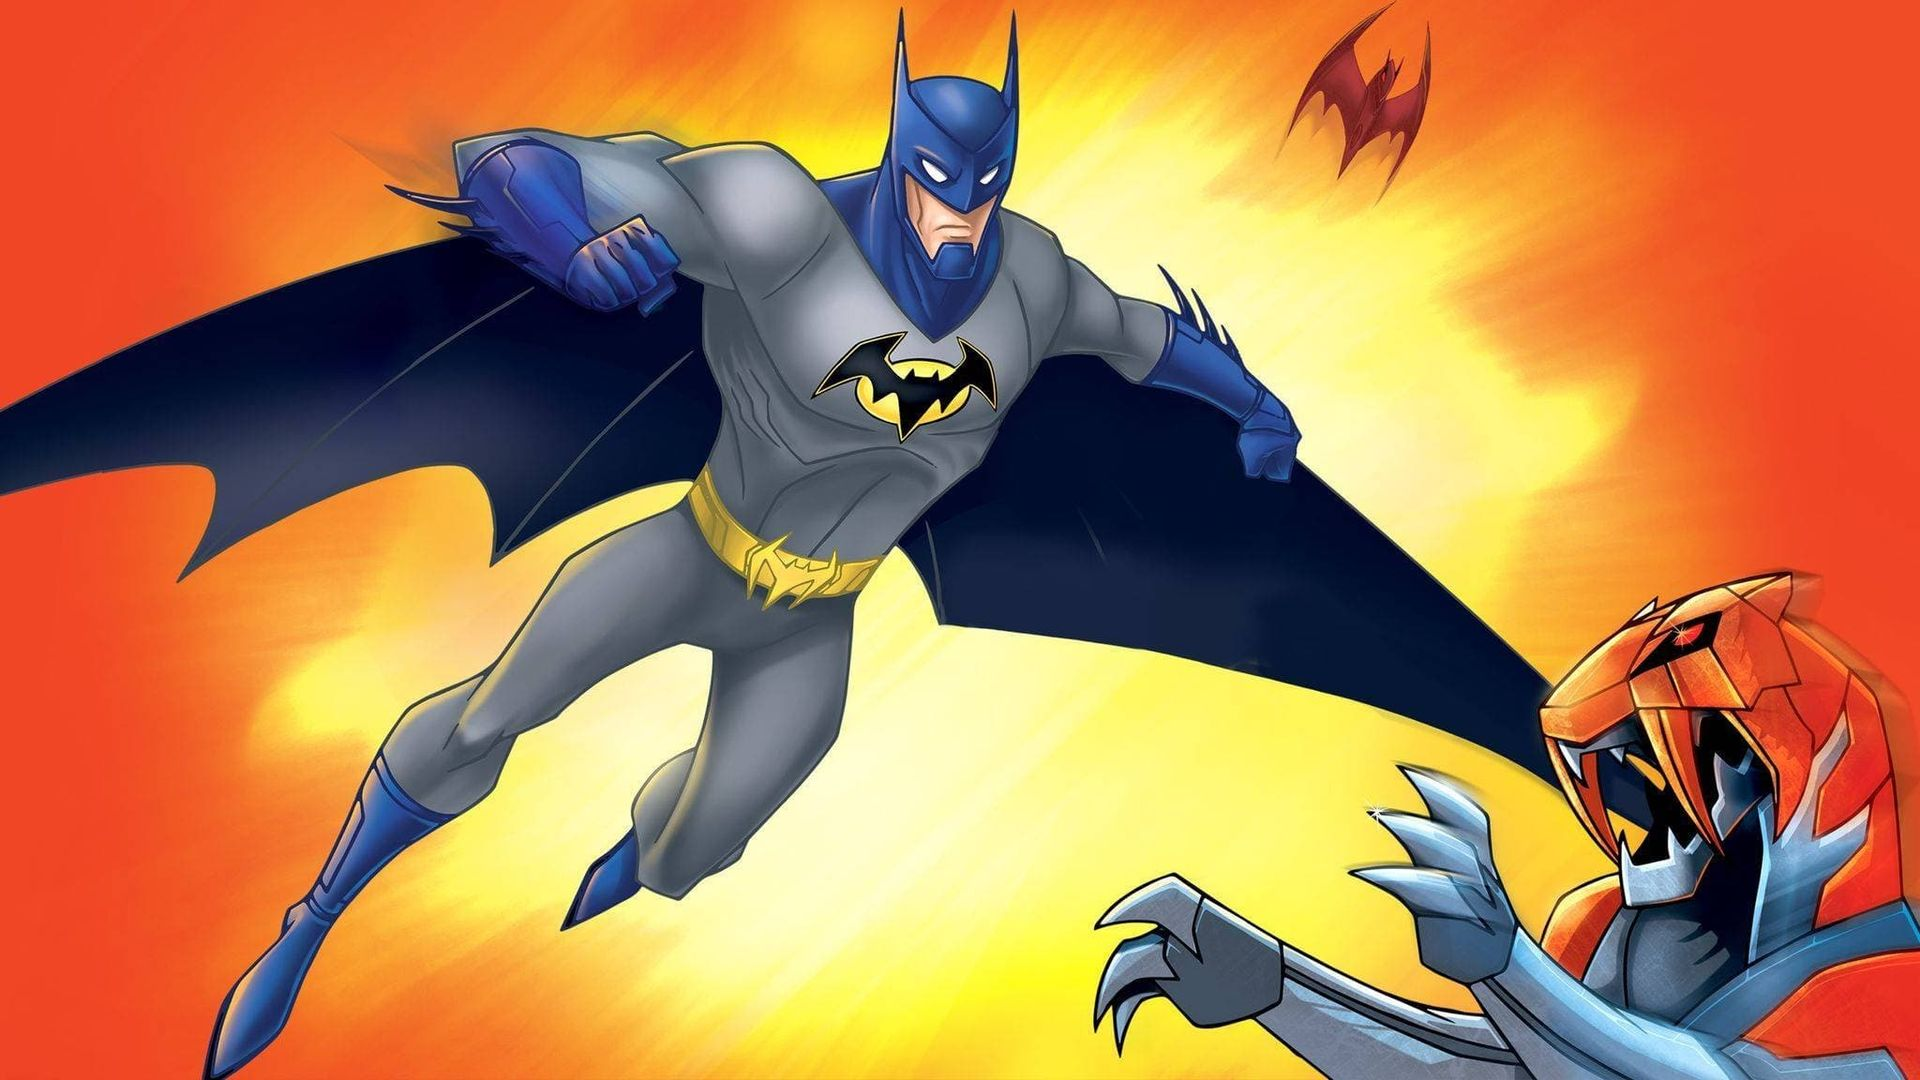 Animal Instincts 3 Full Movie batman unlimited: animal instincts (2015) - where to watch